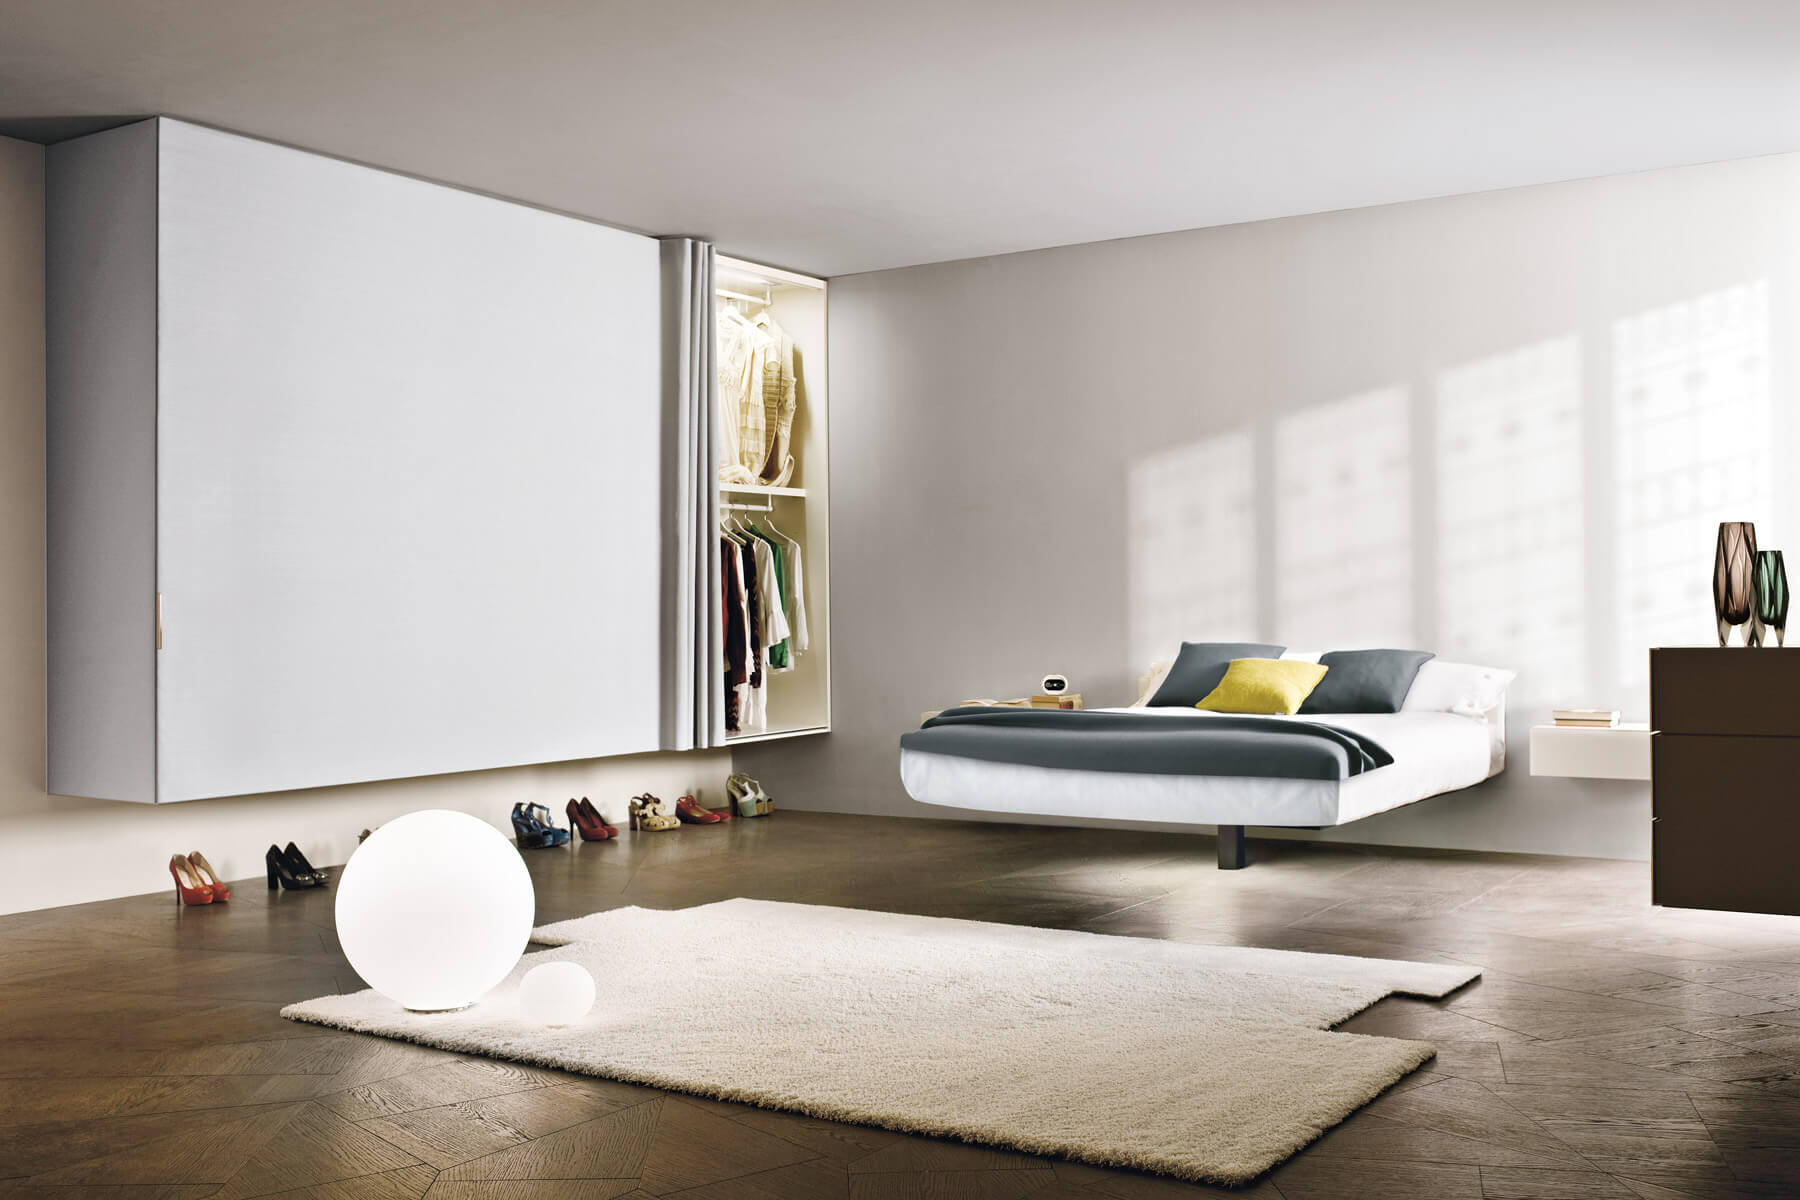 Design-driven bedroom furniture | LAGO Design